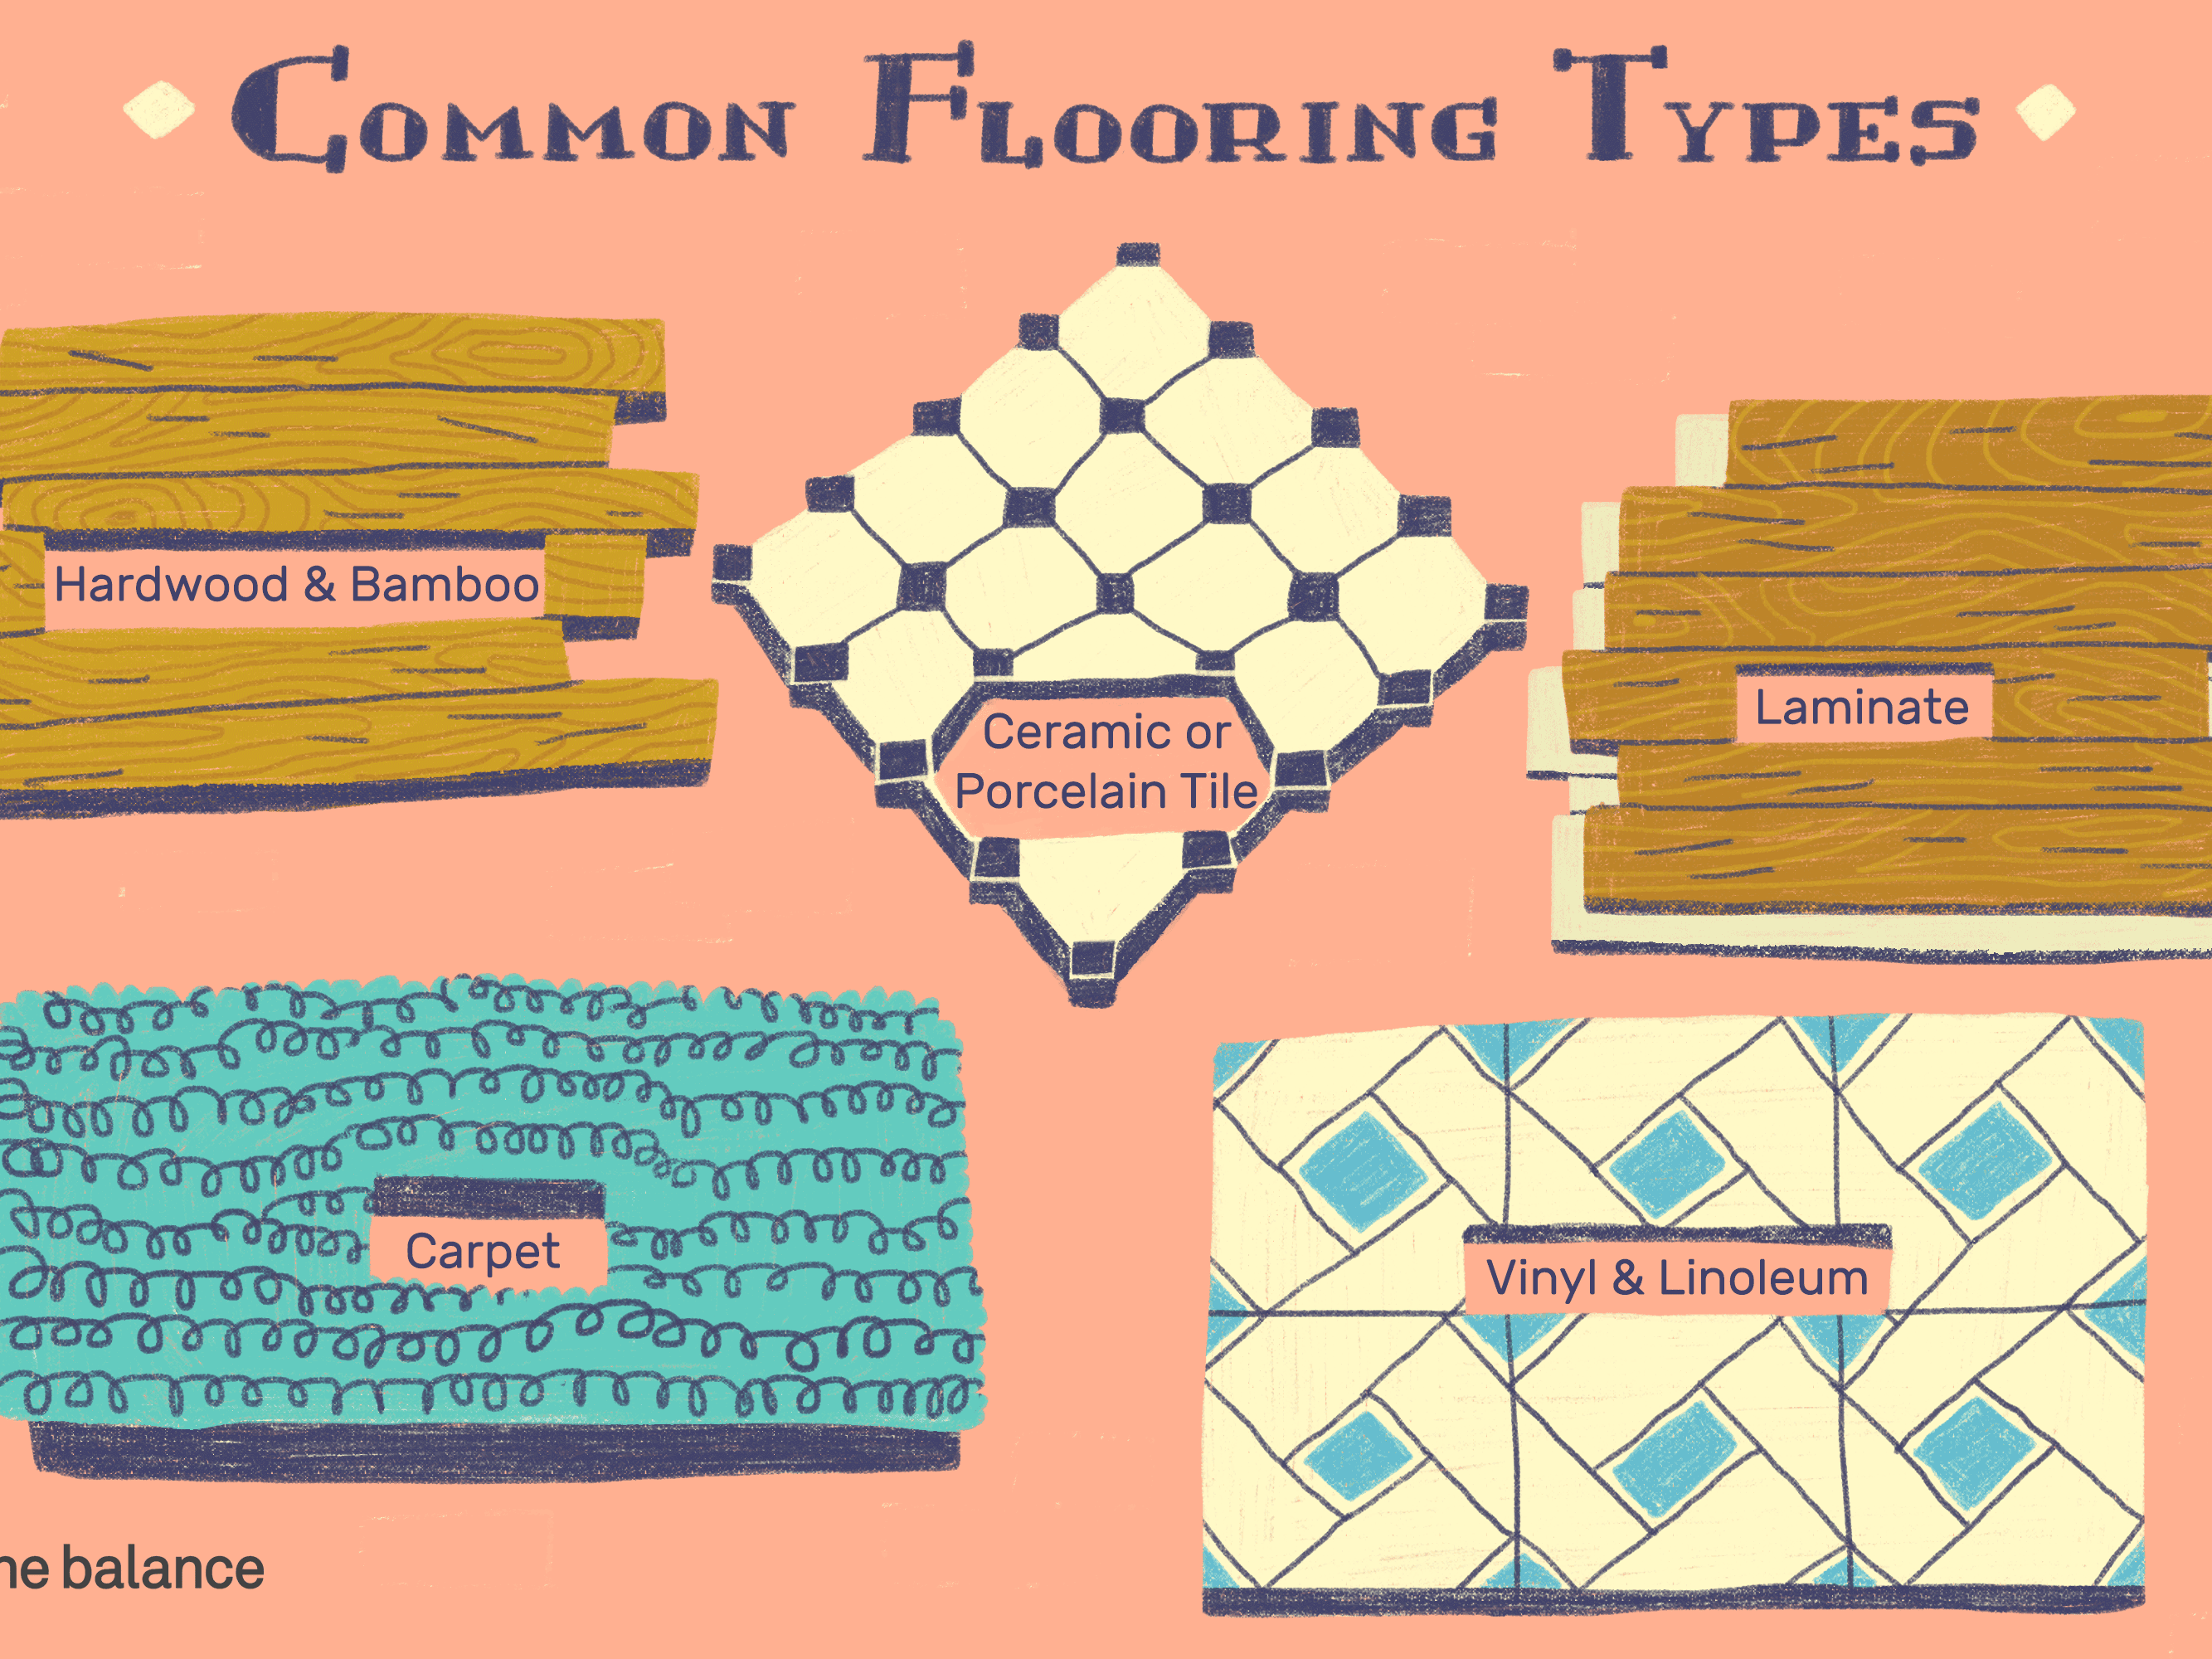 Common Flooring Types Currently Used in